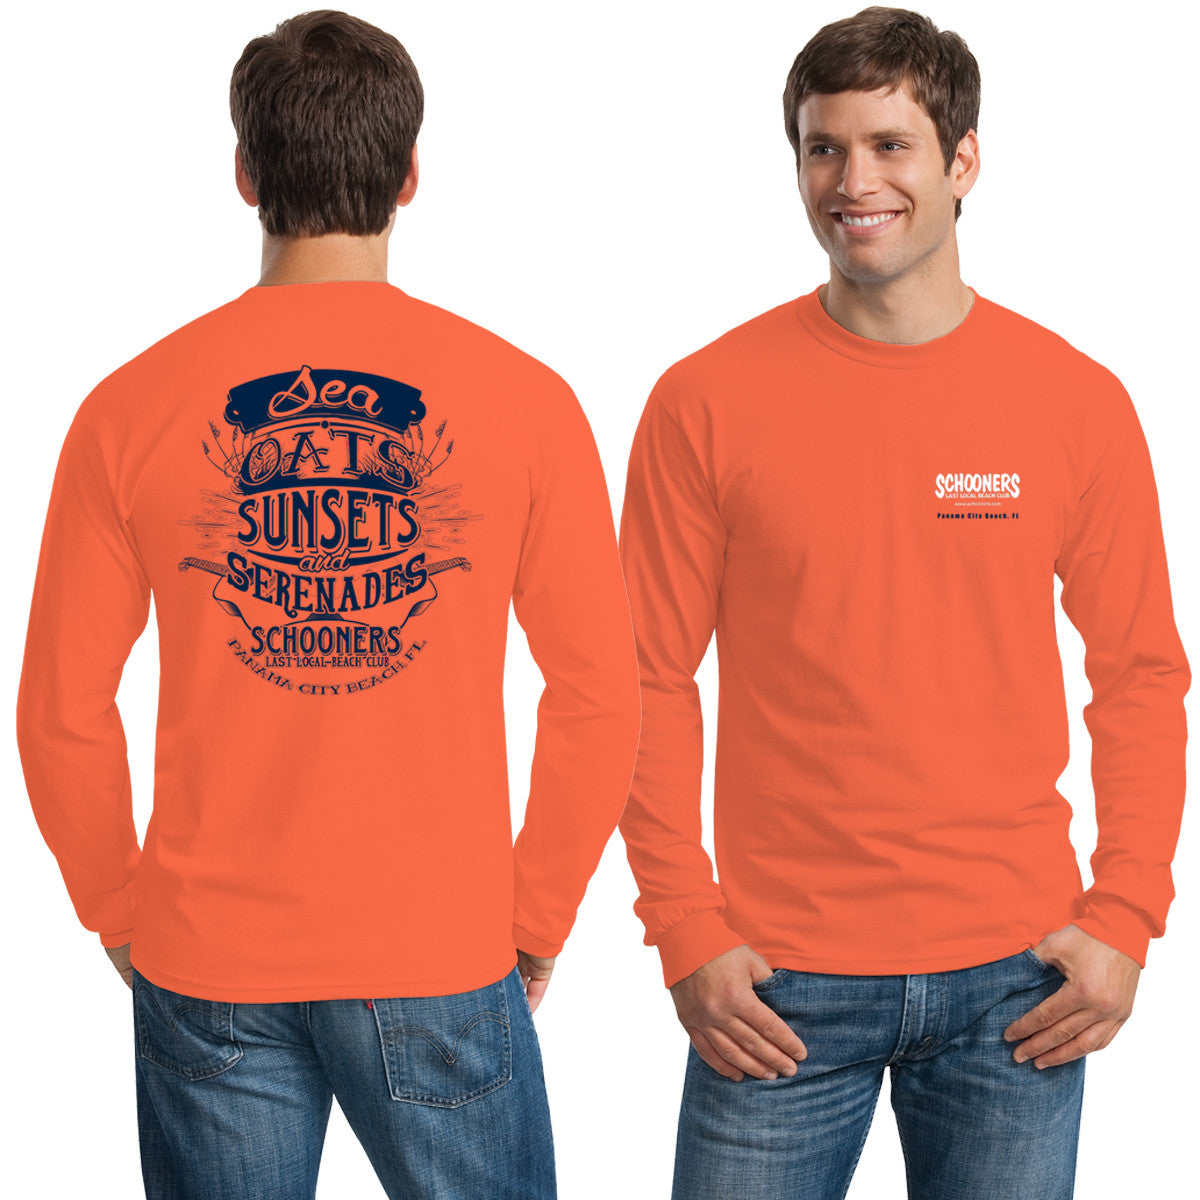 Sea Oats, Sunsets and Serenades Longsleeve T-Shirt